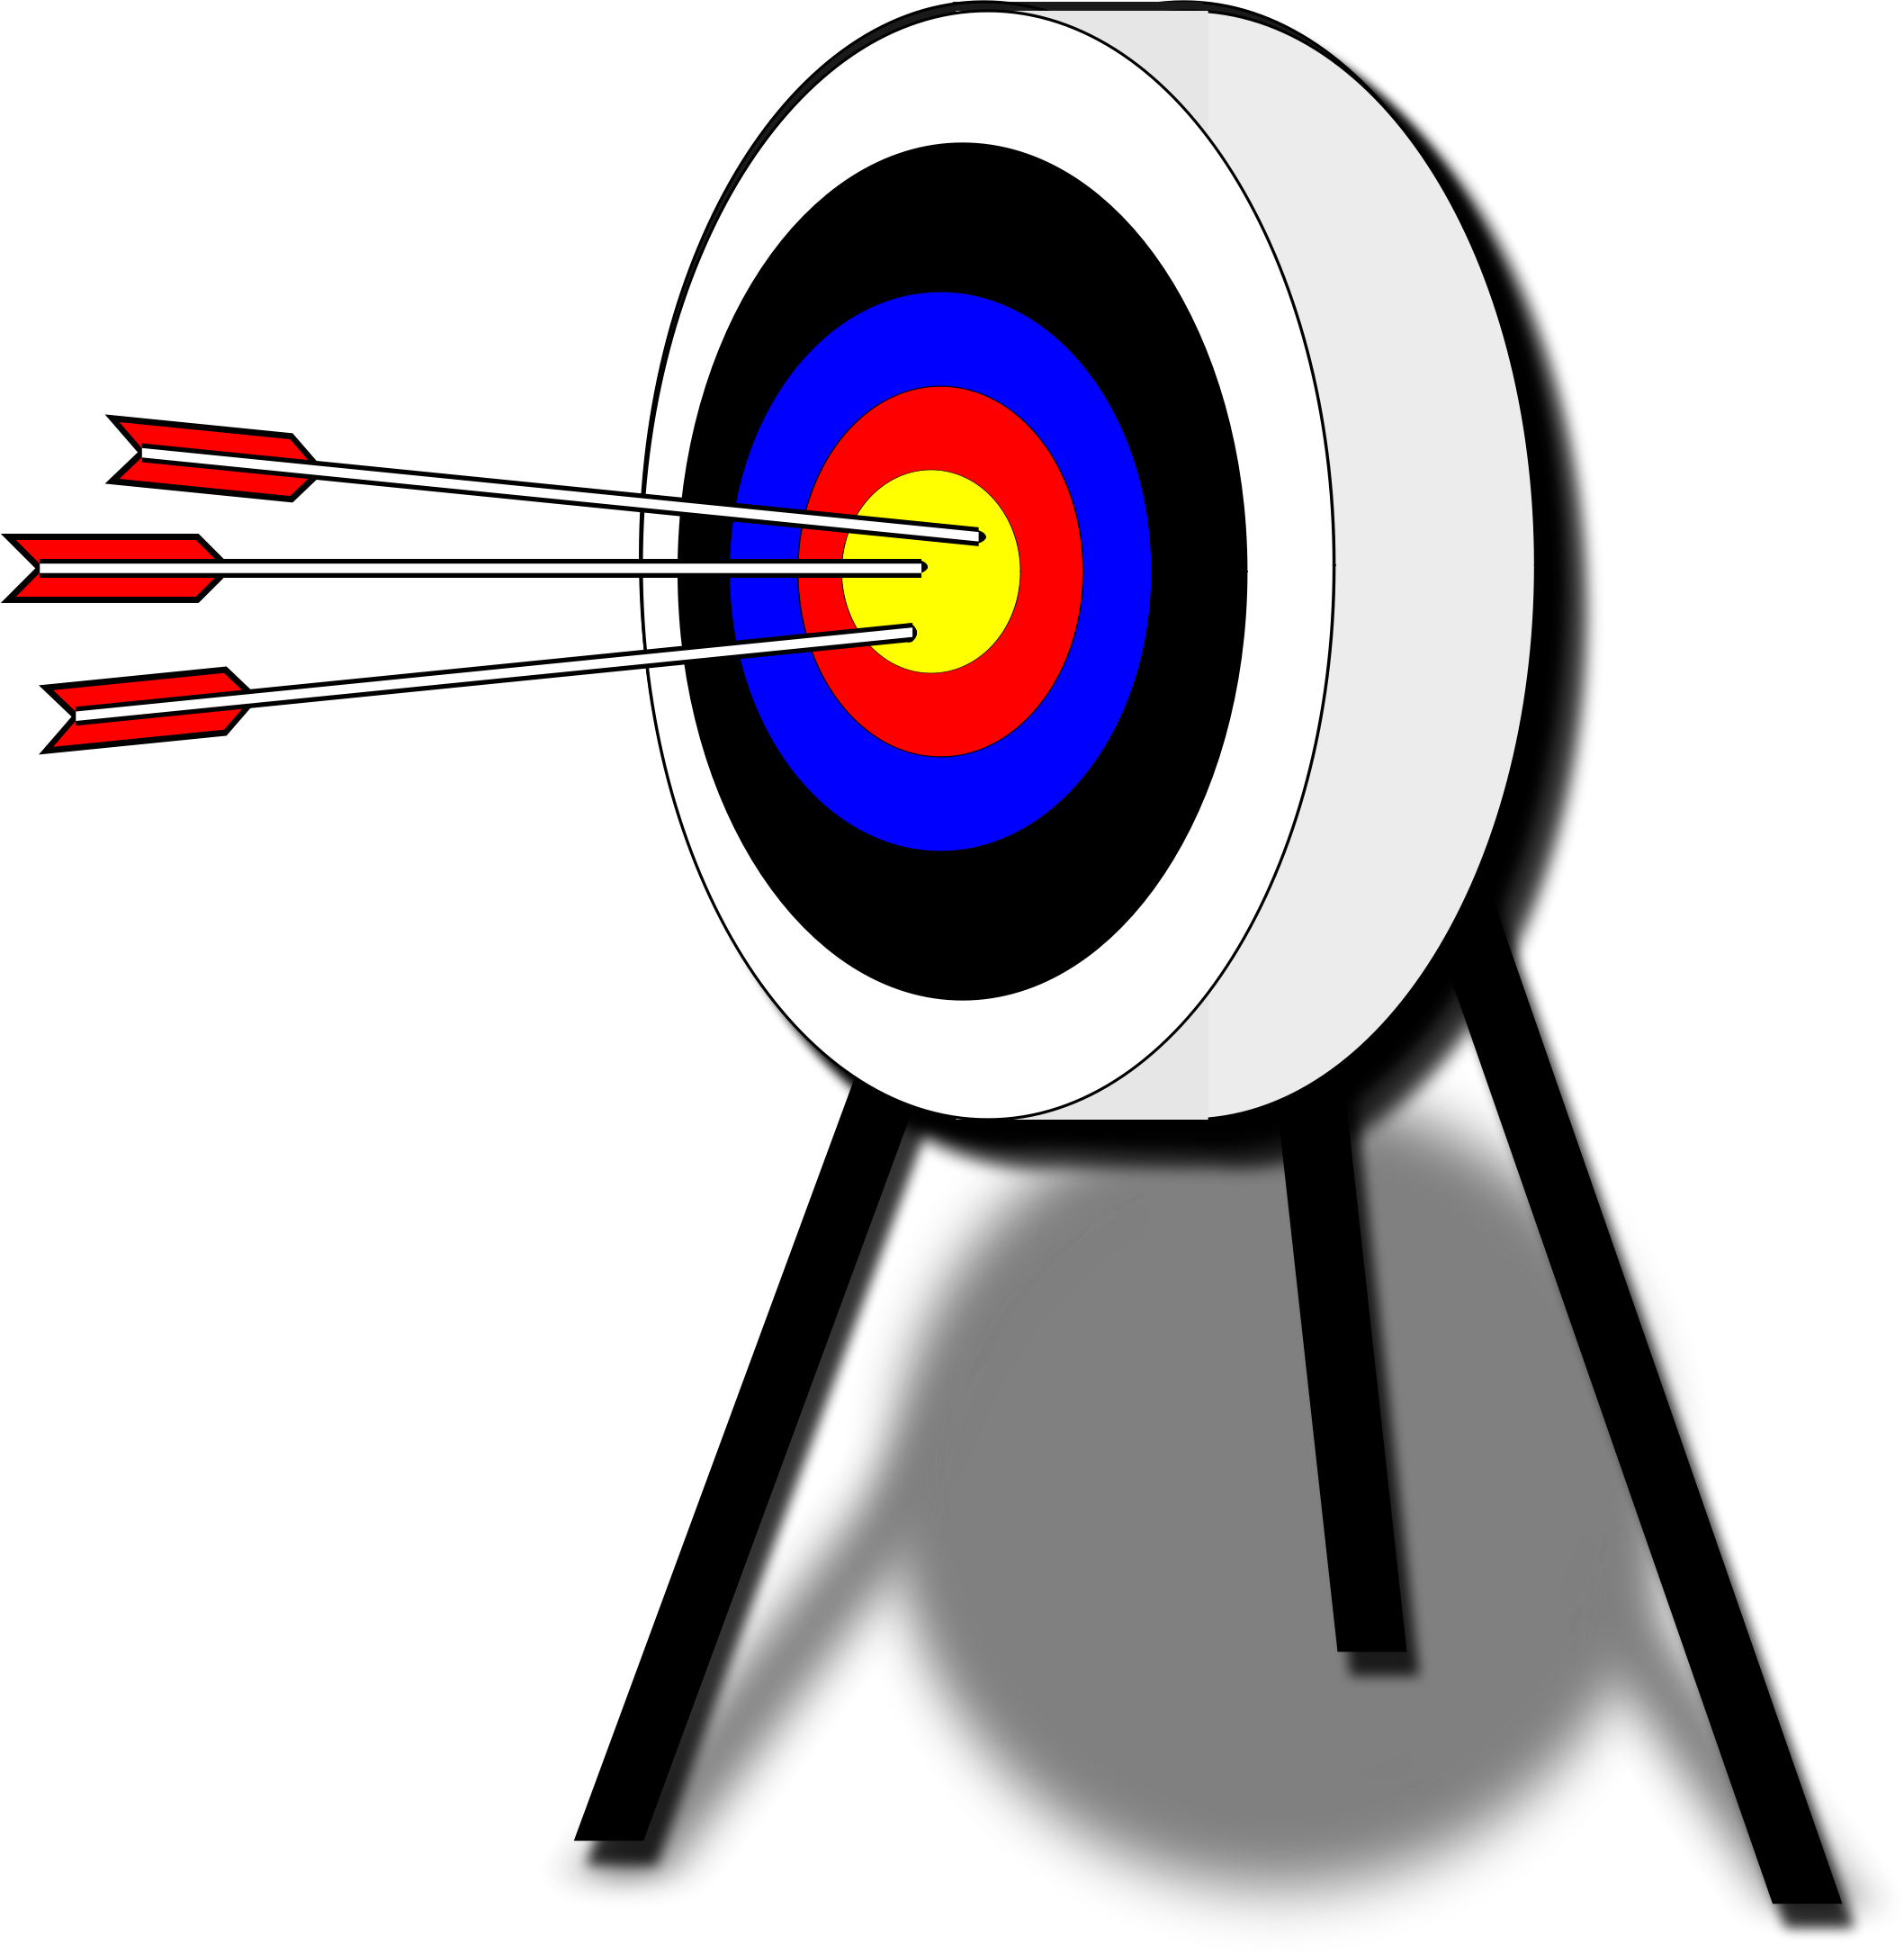 vector royalty free library Bullseye clipart clip art. Archery target big image